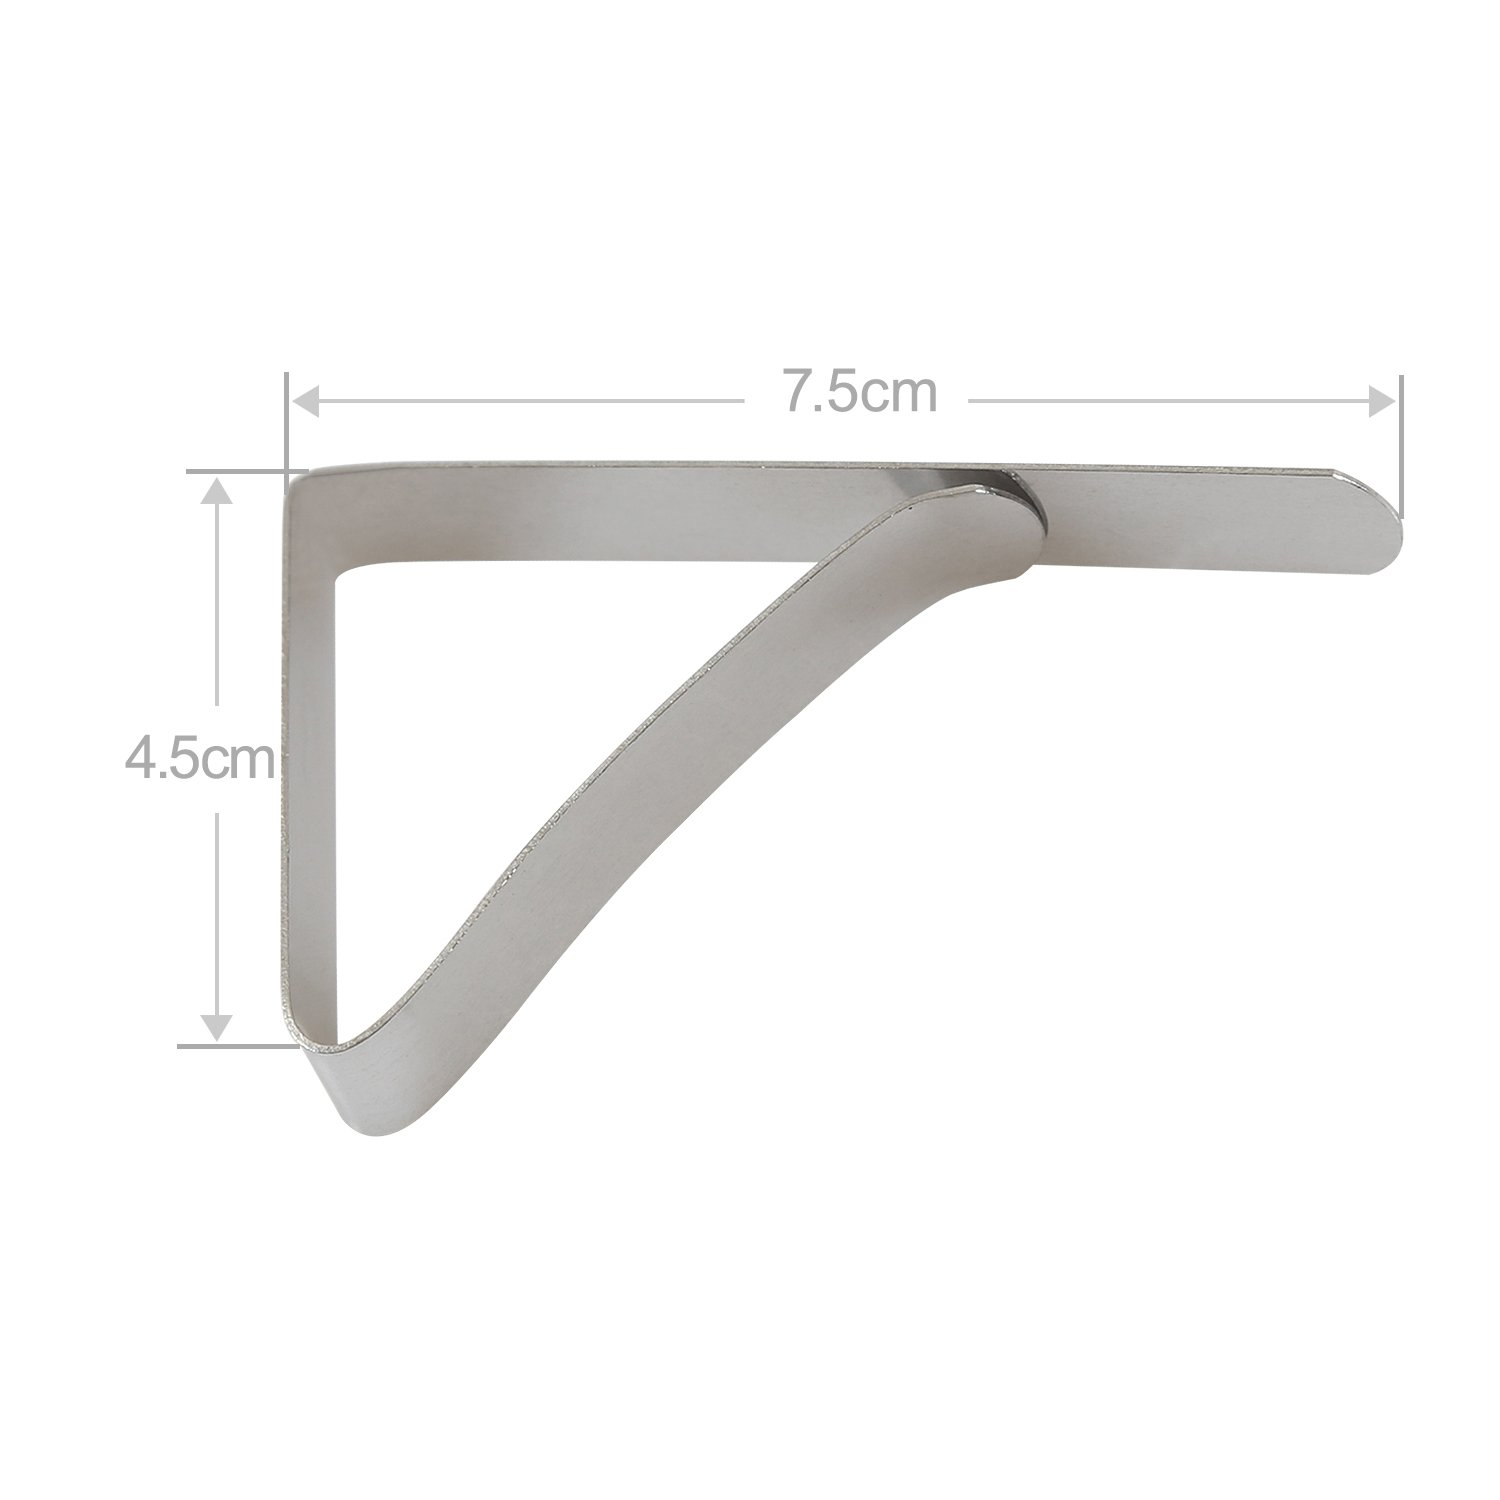 Yblntek 12 Packs Stainless Steel Tablecloth Clip Cover Clamps for Wedding Party Camping (2.95 x 1.77 Inch)